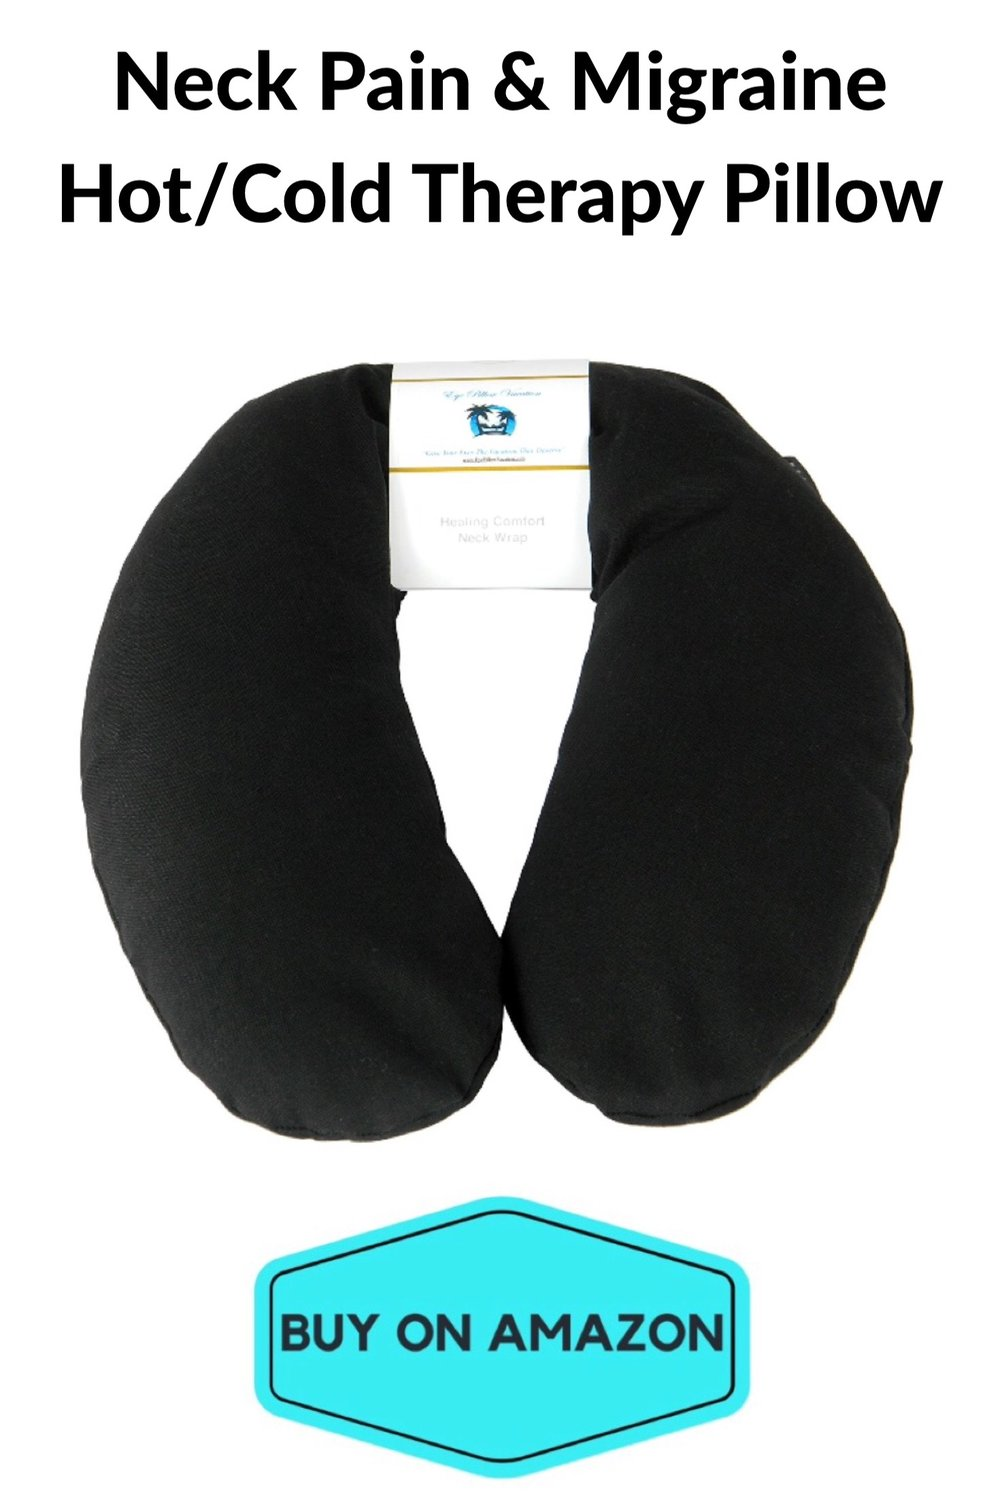 Neck Pain & Migraine Hot/Cold Therapy Pillow